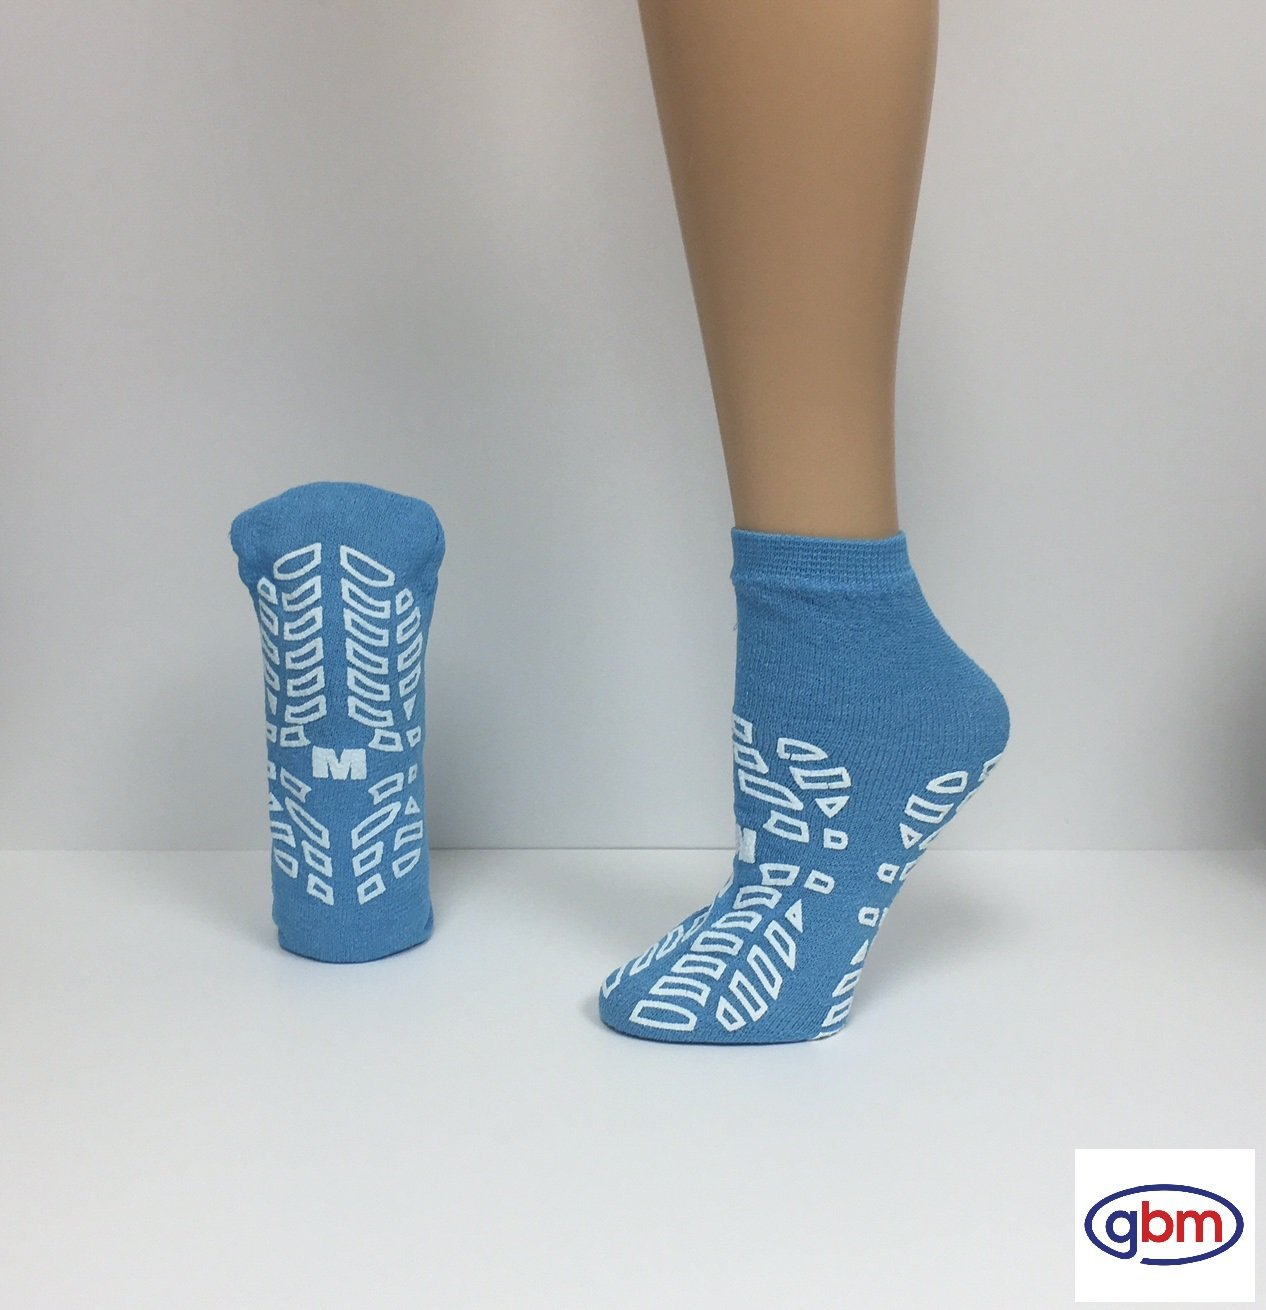 Secure Step Double-Sided Non Slip Comfort Safety Sock - Blue - Medium (6 Pair) - Men's Size: 4-5 / Women's Size: 5-6